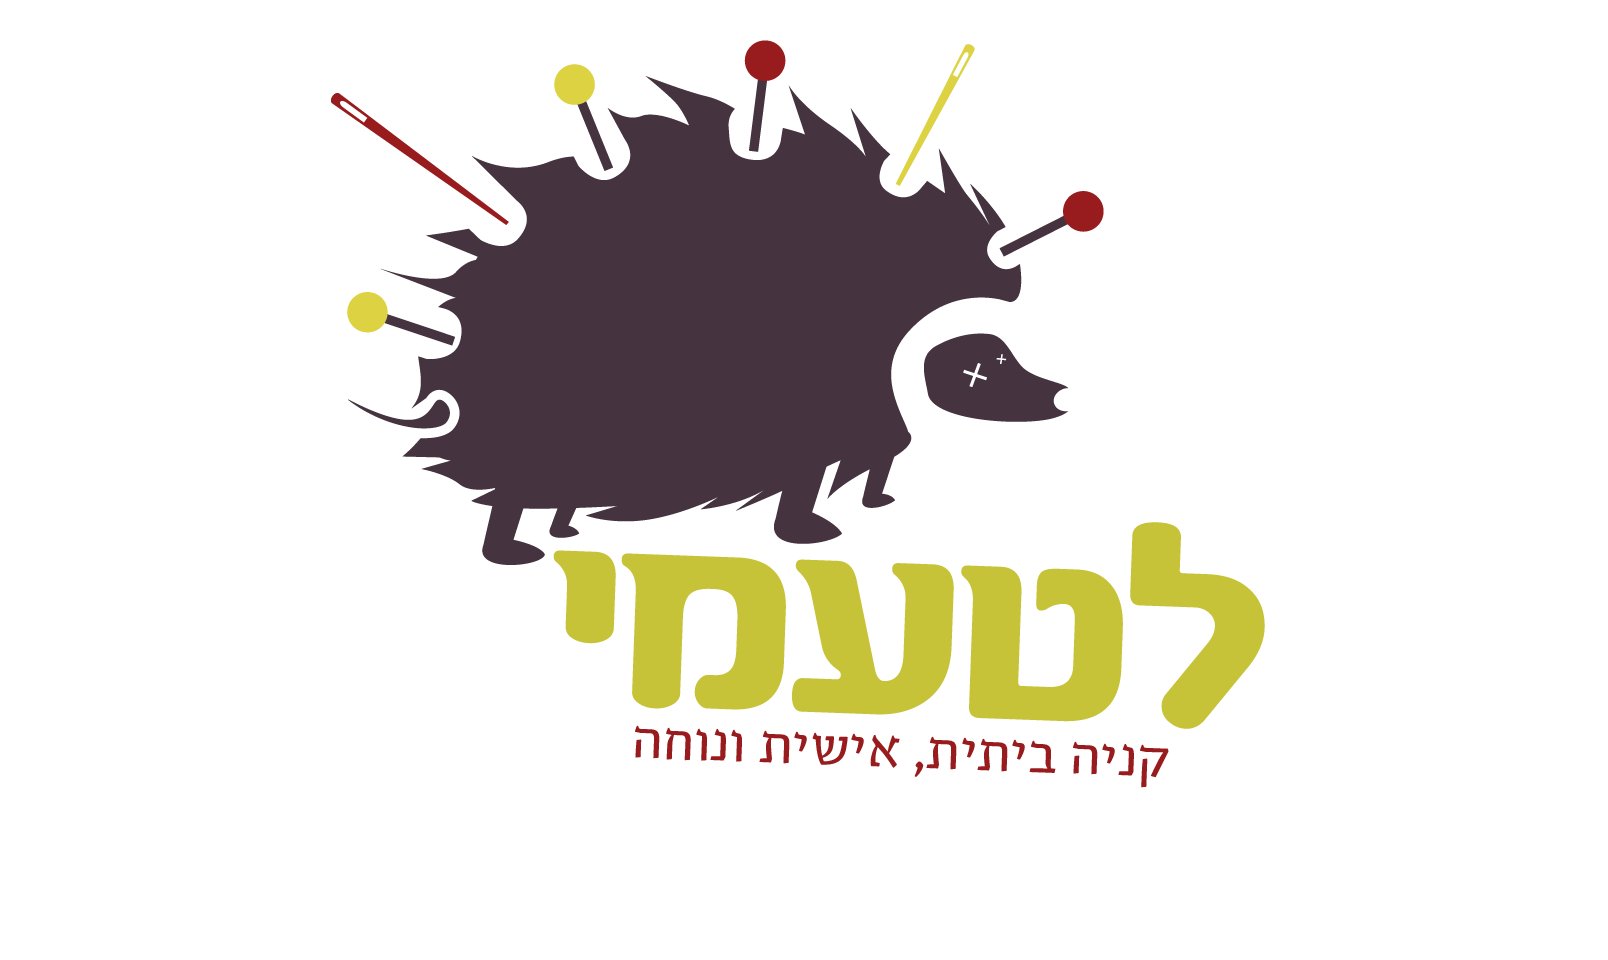 https://bigeyes.co.il/wp-content/uploads/2019/06/letaami-logo-mobile.png